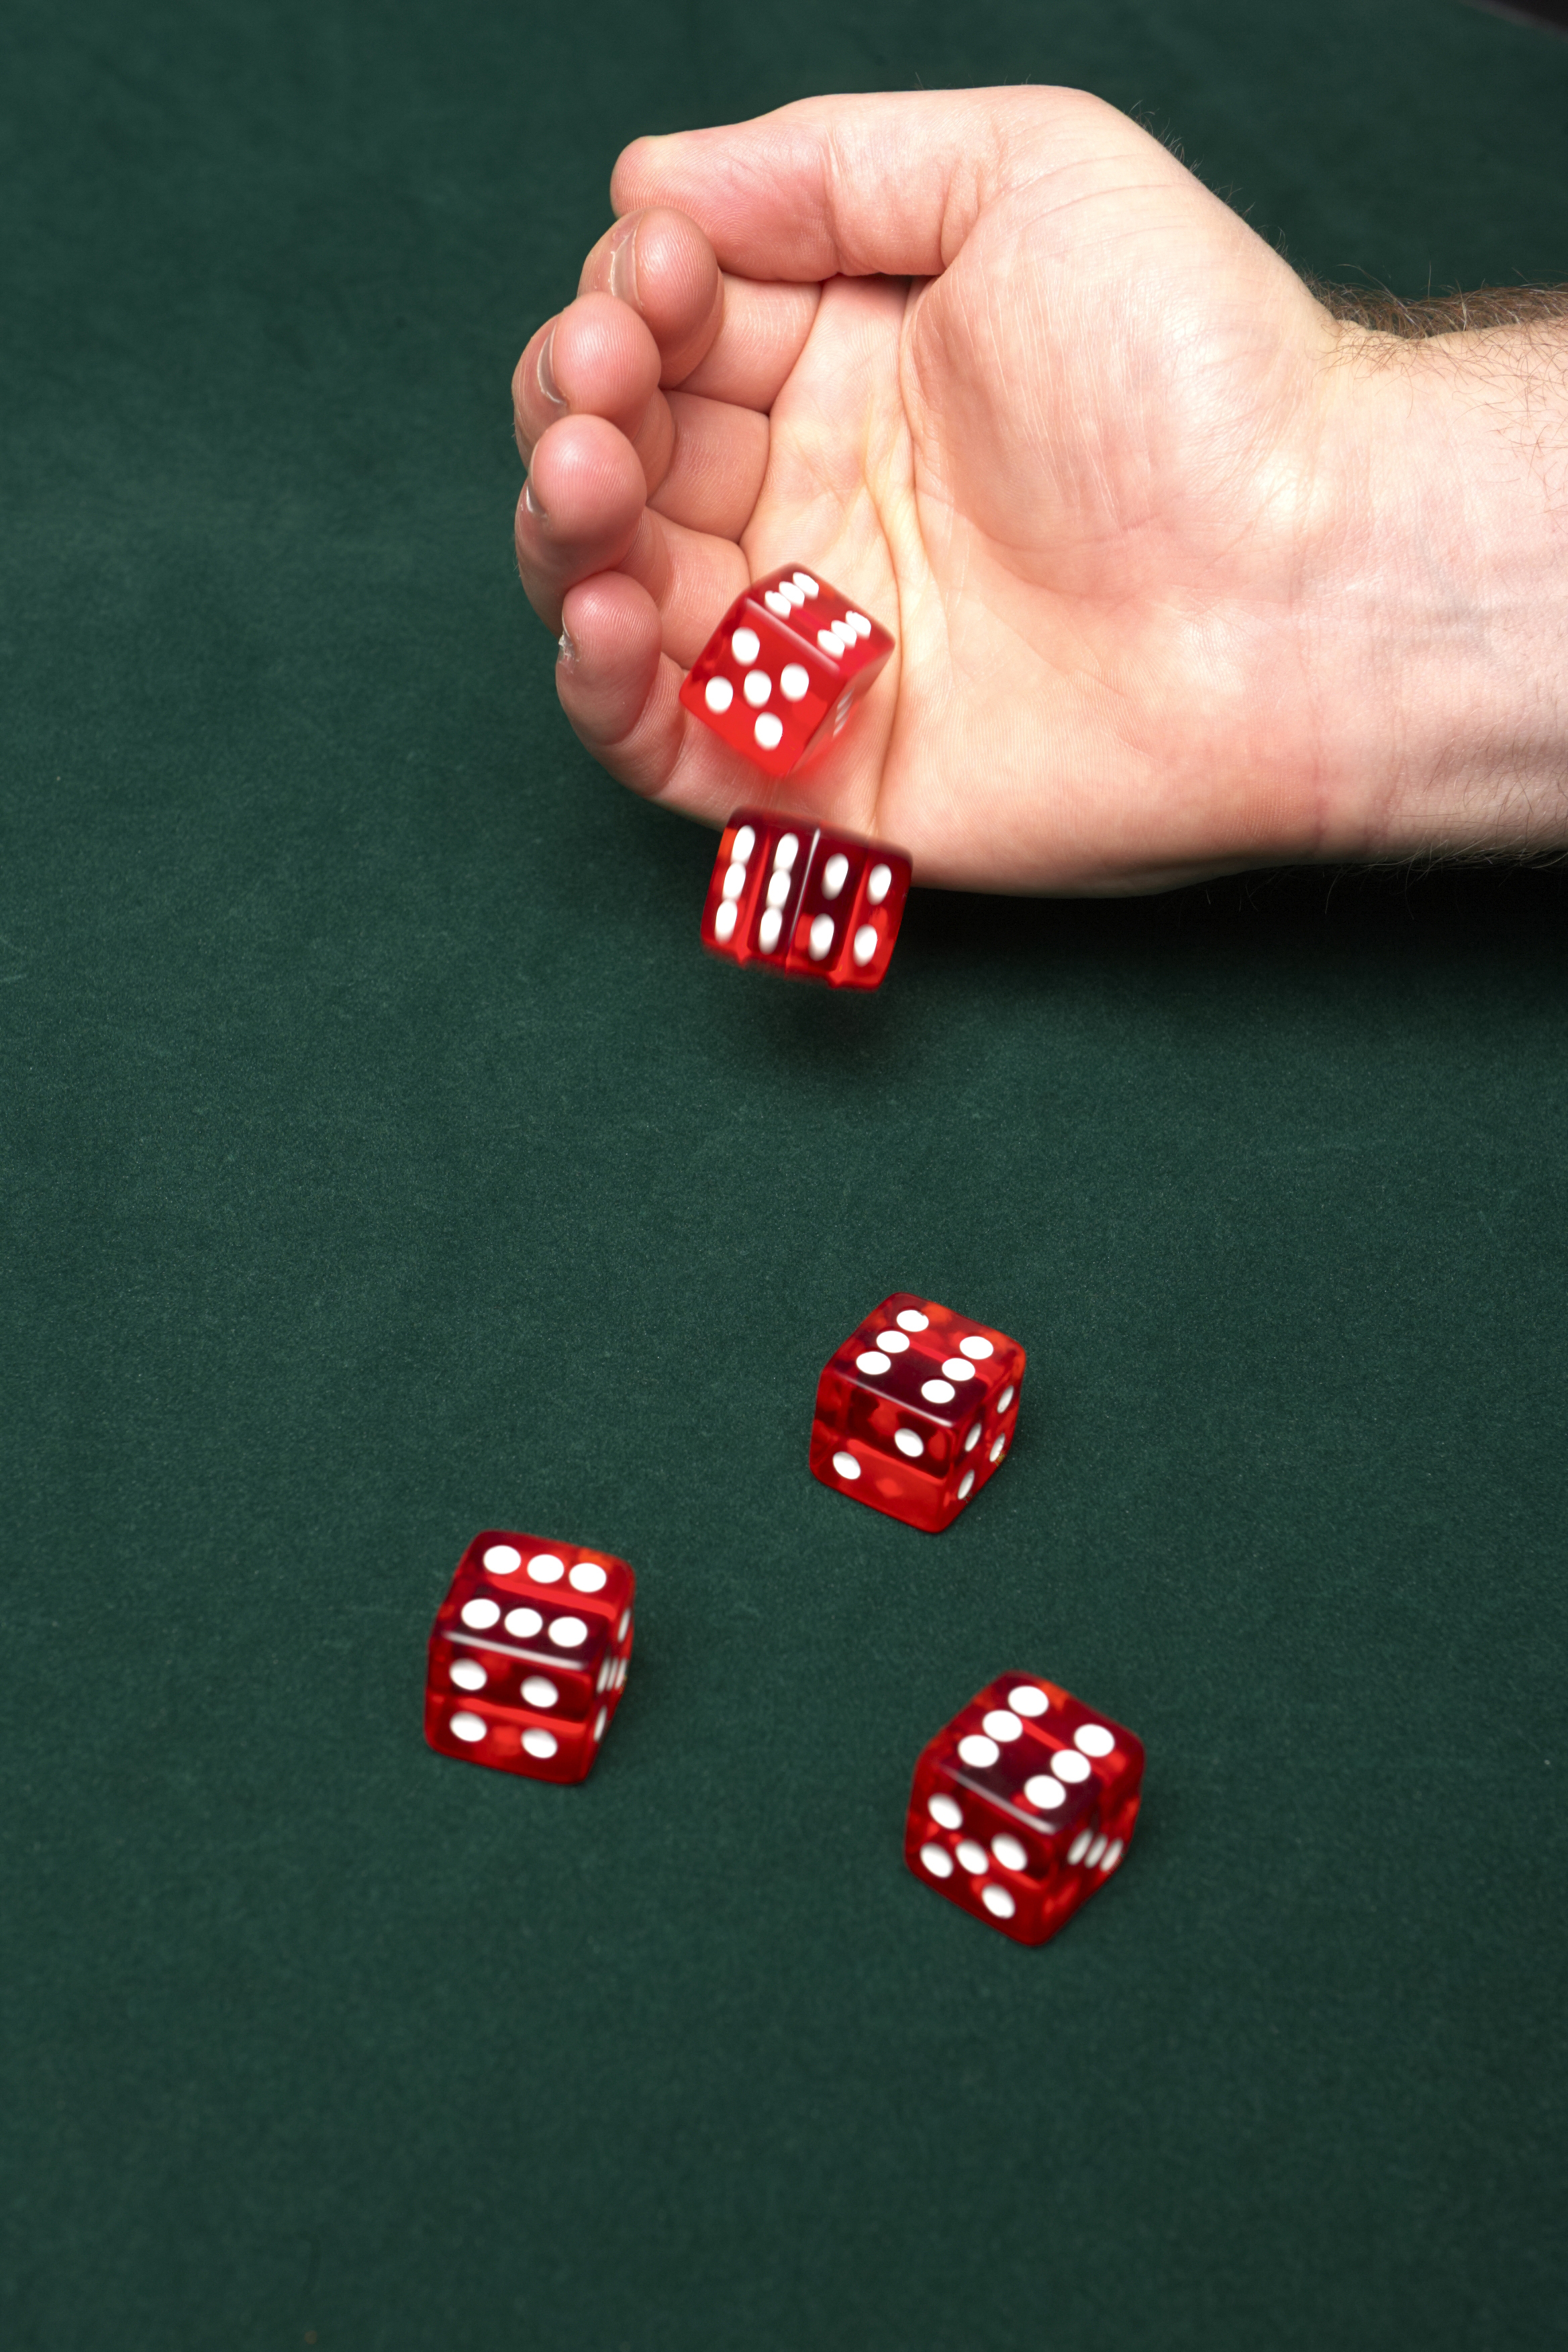 Man rolling 5 red dice